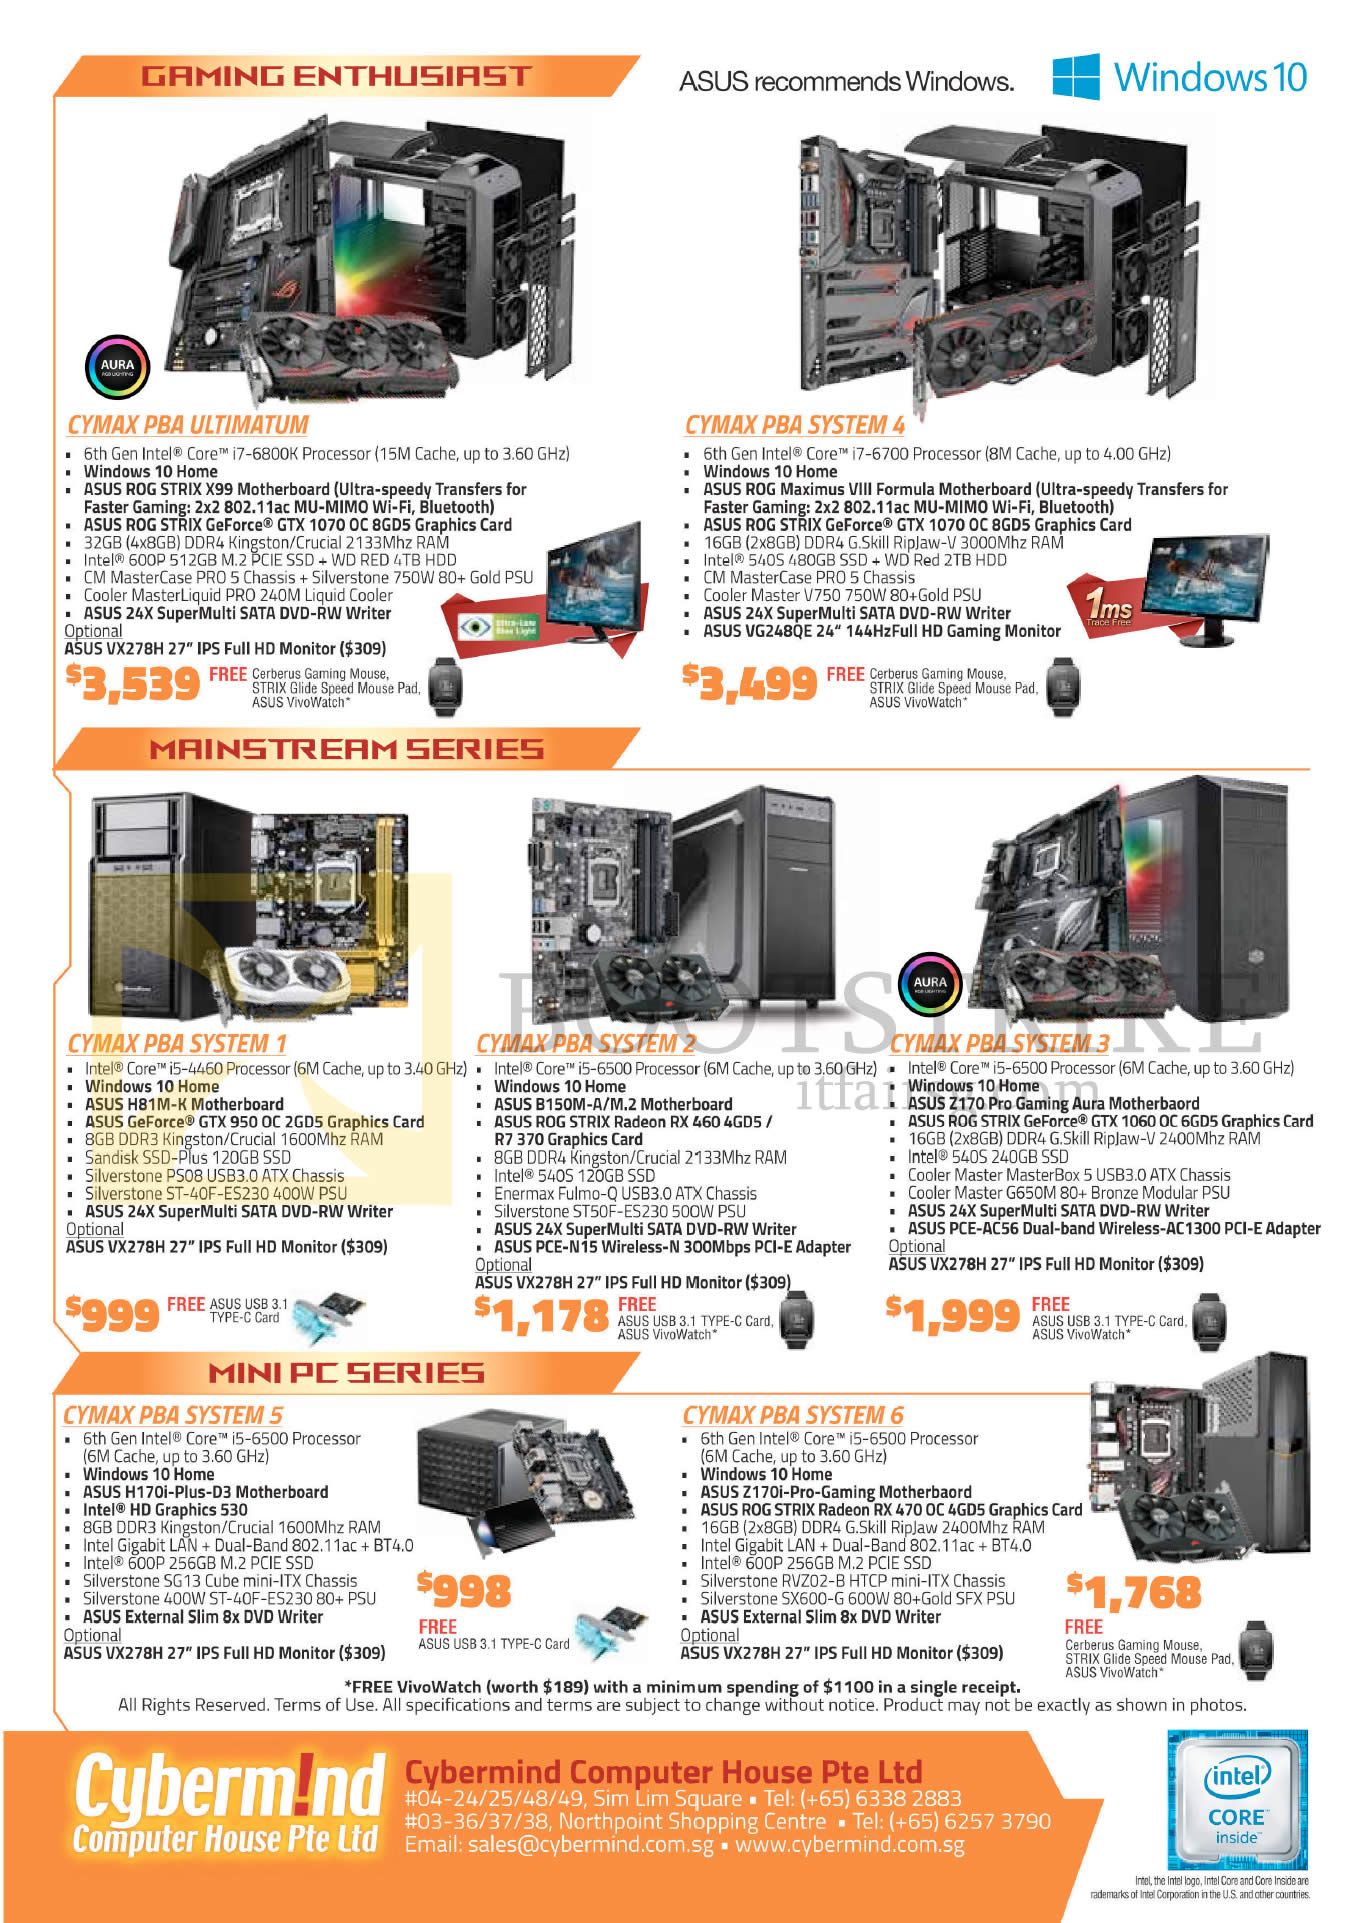 COMEX 2016 price list image brochure of Cybermind Desktop PCs Cymax PBA Ultimatum, PBA System 4, 1, 2, 3, 5, 6